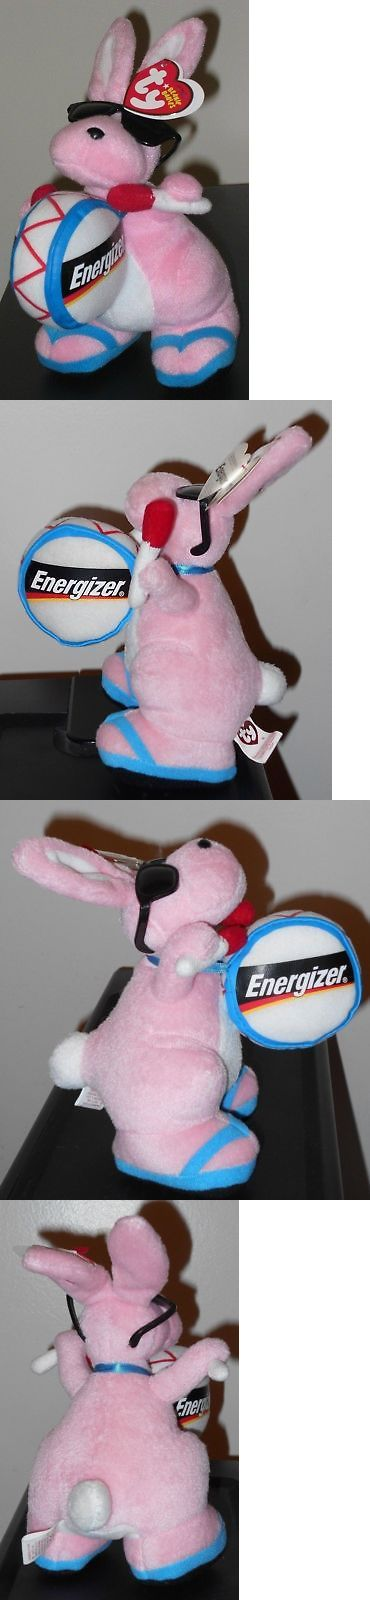 684792a002c Beanie Babies-Original 19205  Ty Beanie Baby ~ Energizer Bunny The Bunny ( Walgreen S Exclusive) Mwmt -  BUY IT NOW ONLY   49.9 on  eBay  beanie   energizer   ...